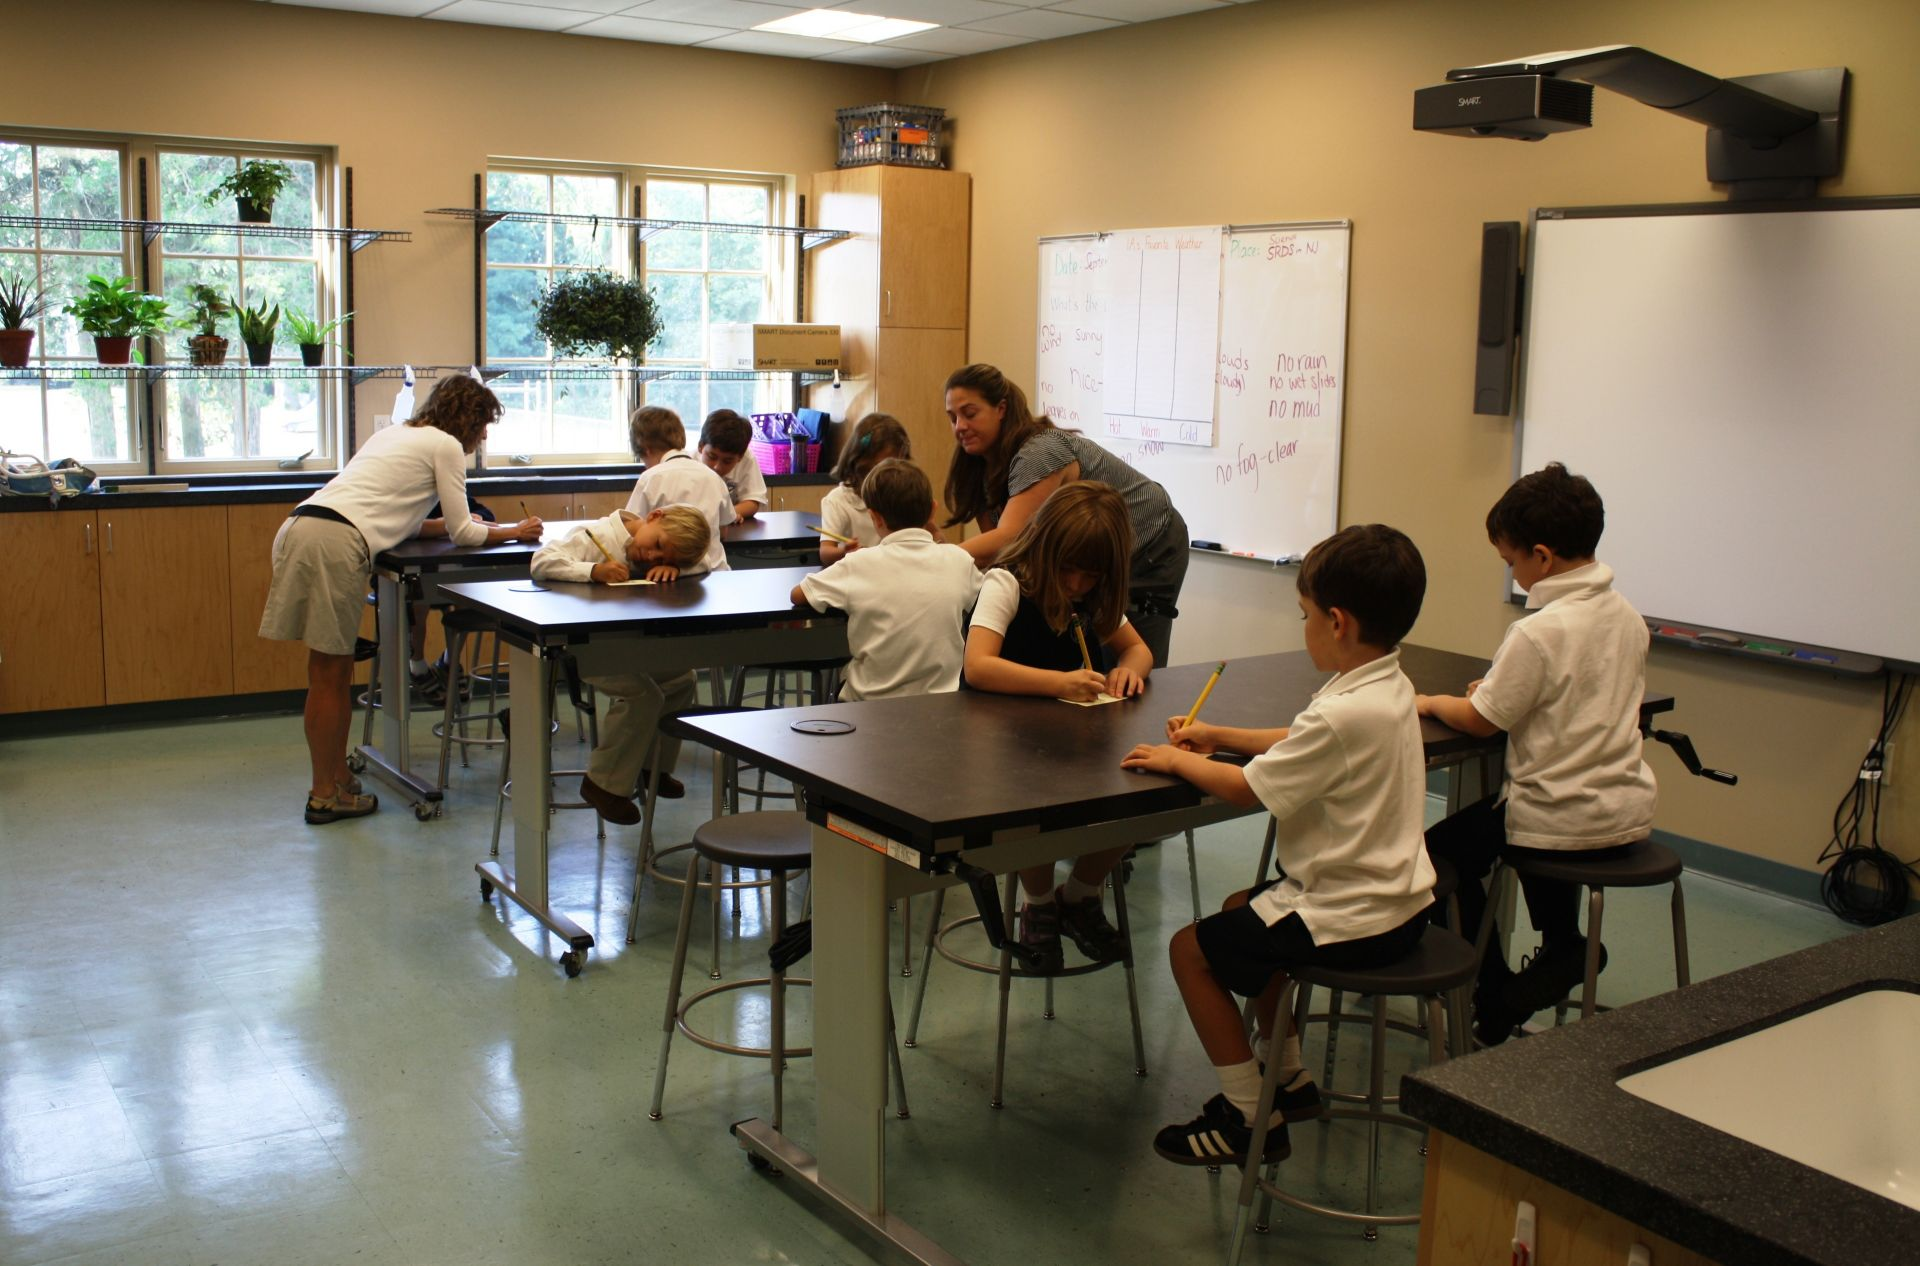 The fully equipped, state-of-the-art Lower School Science Lab engages students in hands-on, inquiry-based learning